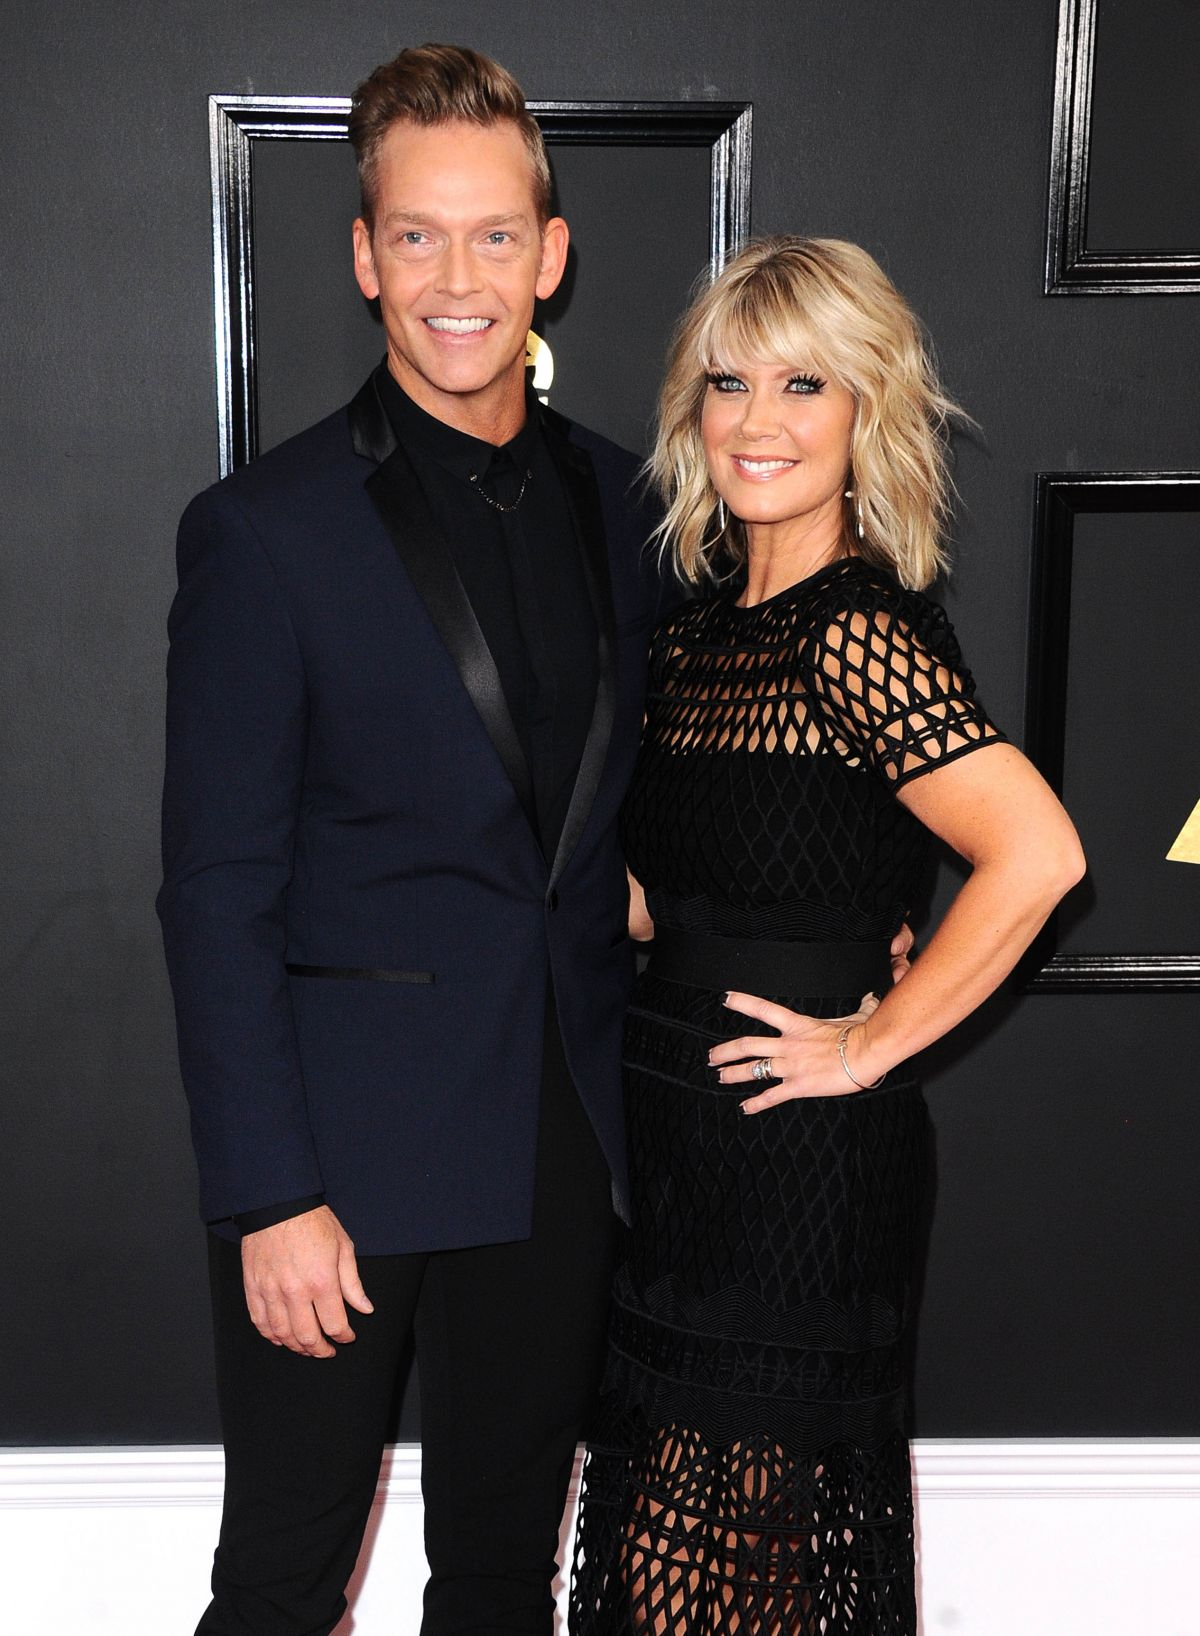 NATALIE GRANT at 59th Annual Grammy Awards in Los Angeles 02/12/2017